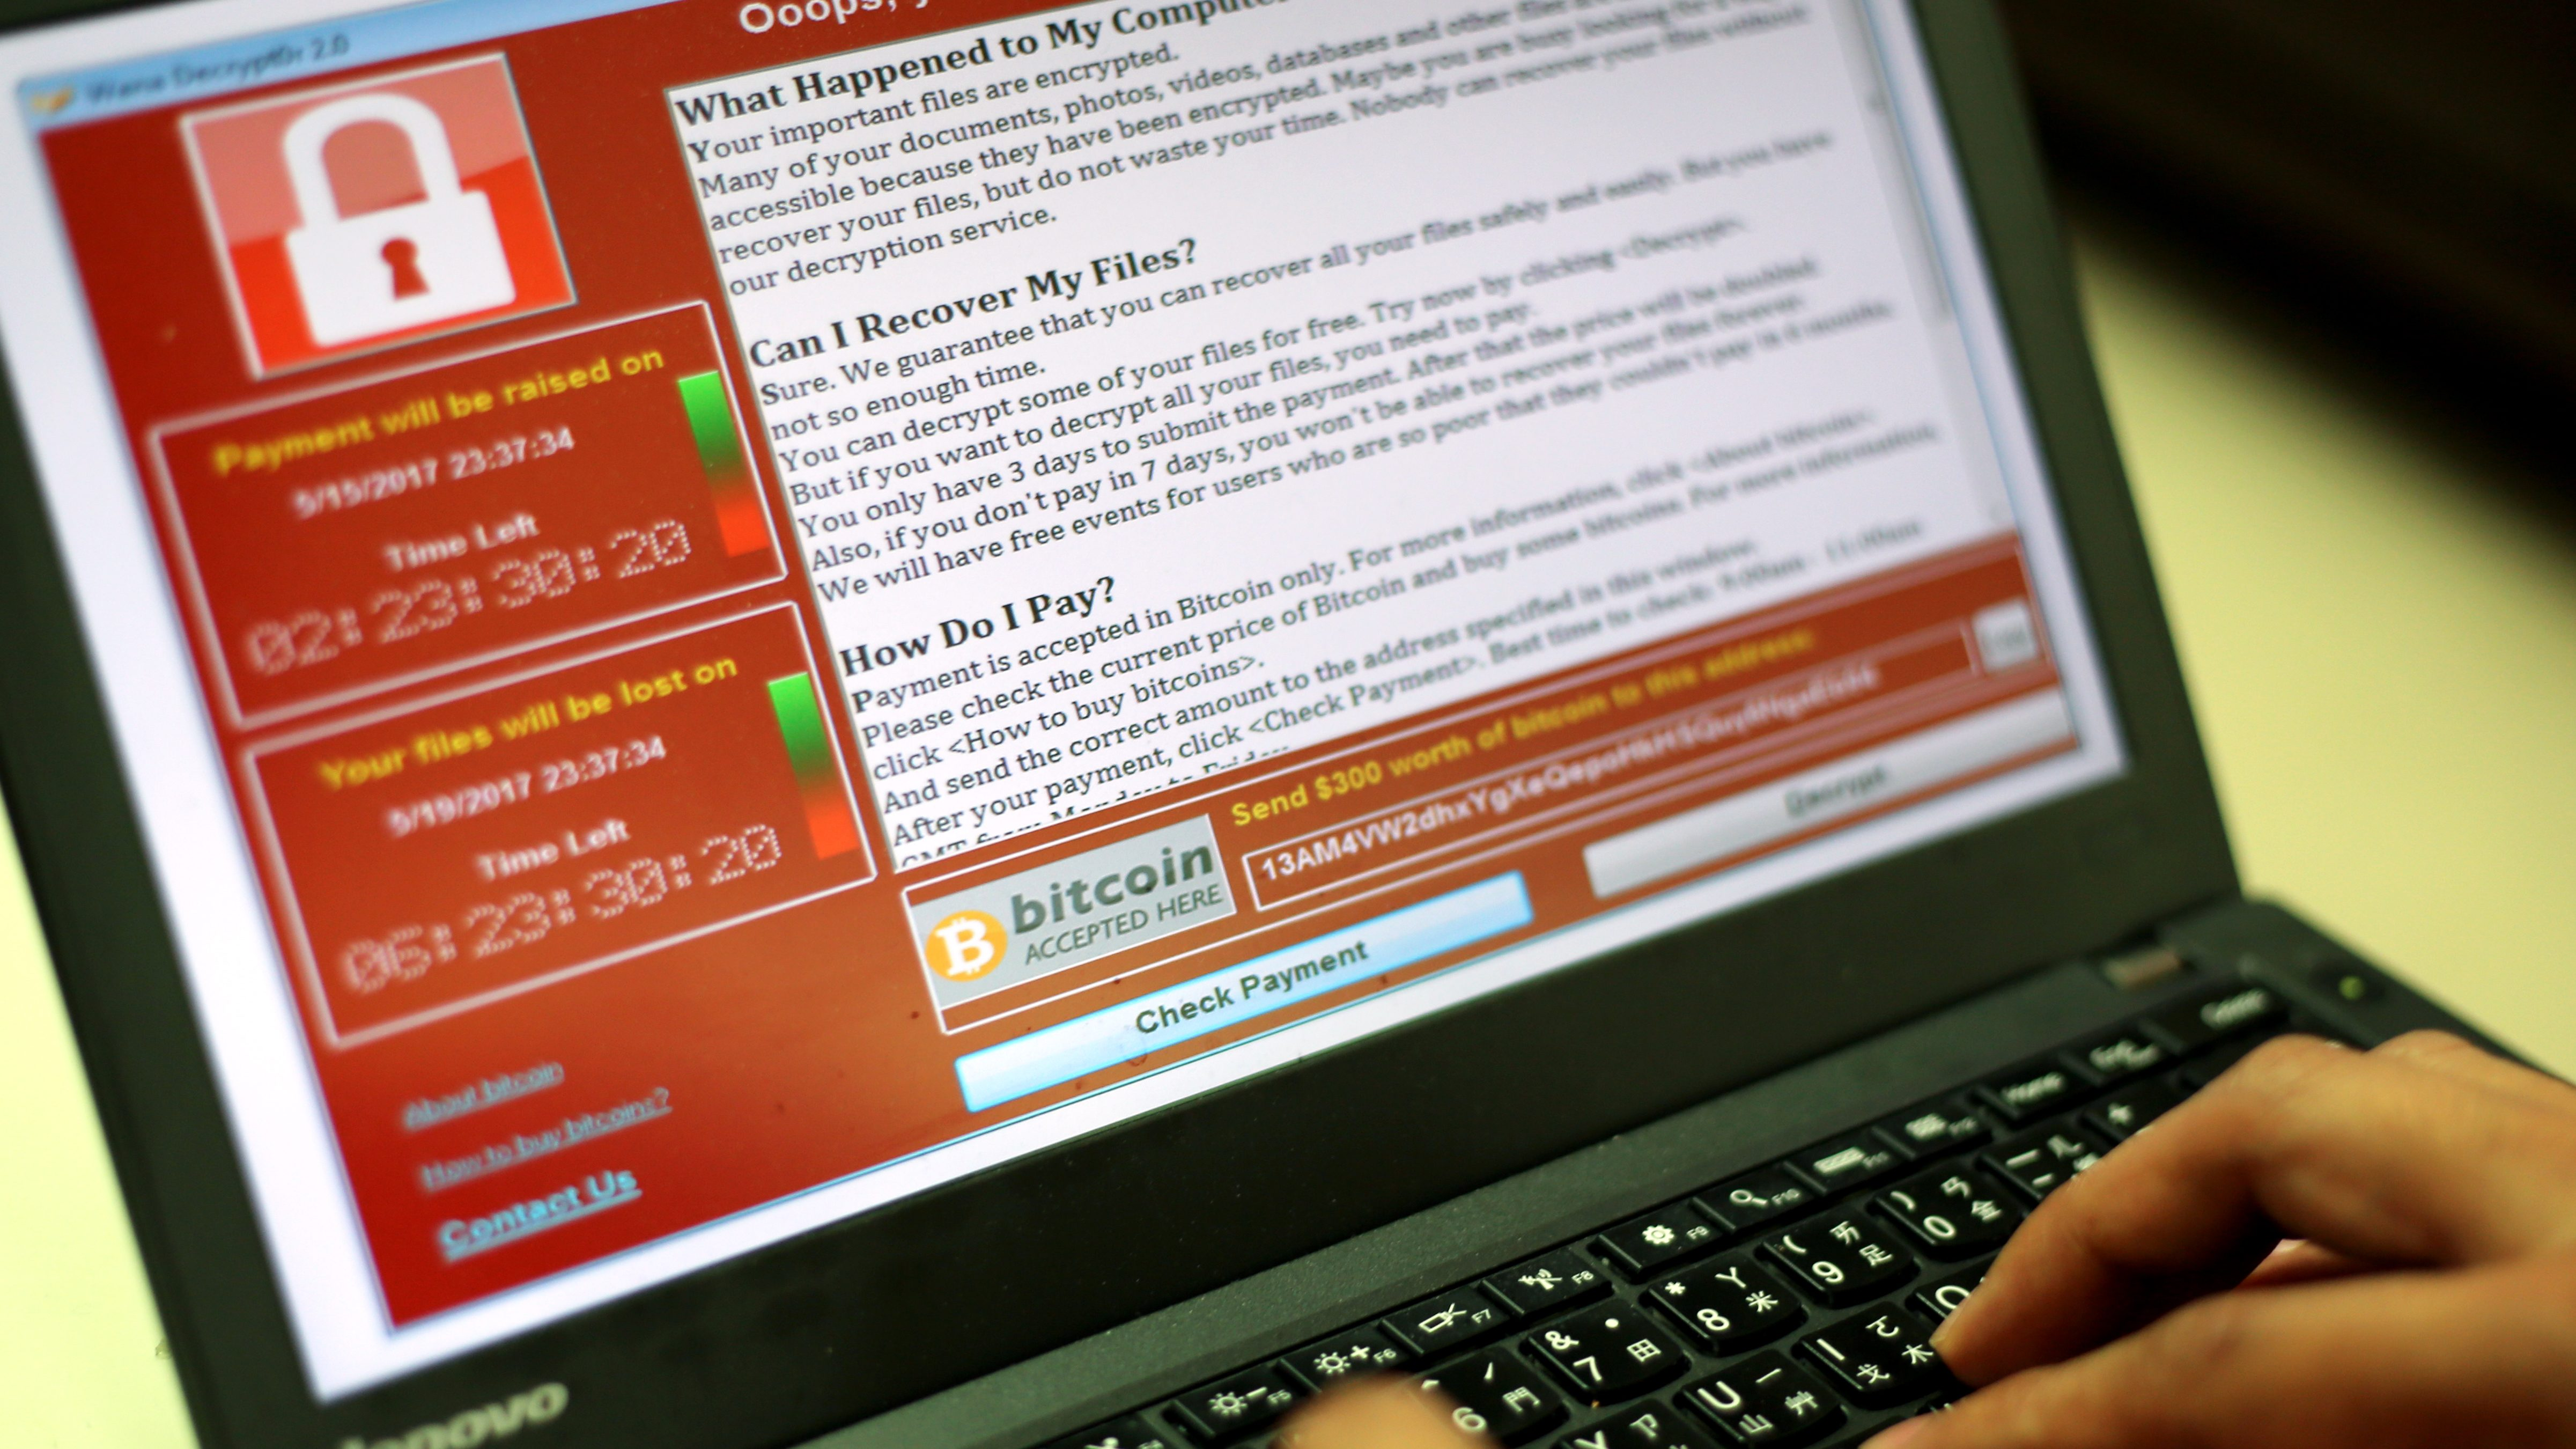 WannaCry update: The hackers behind ransomware attack finally cashed